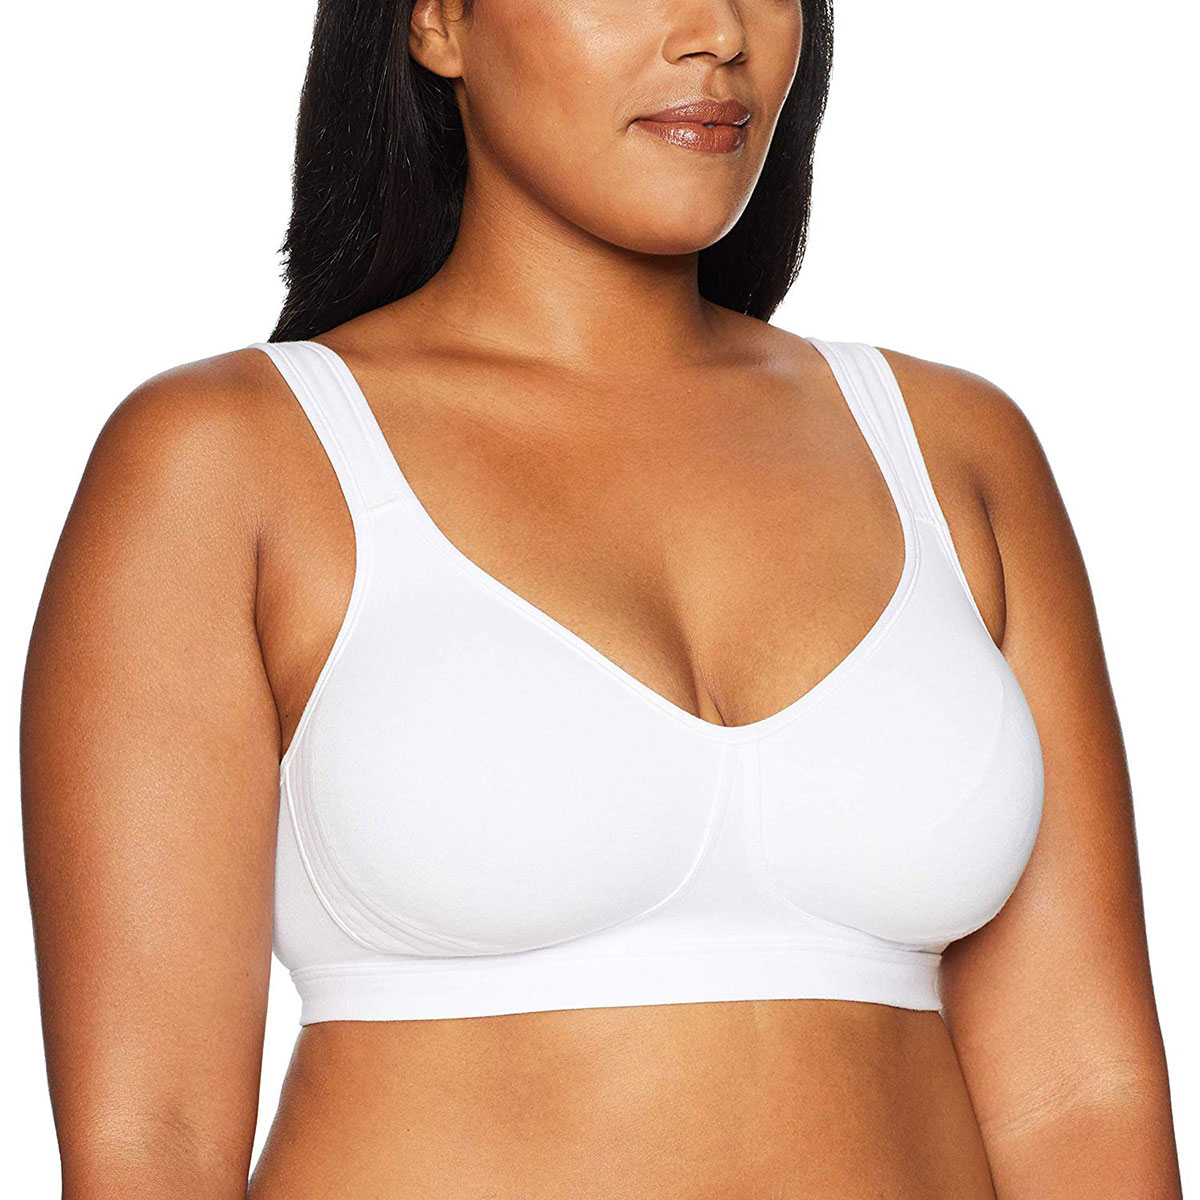 Playtex 18-Hour Ultimate Lift and Support Bra